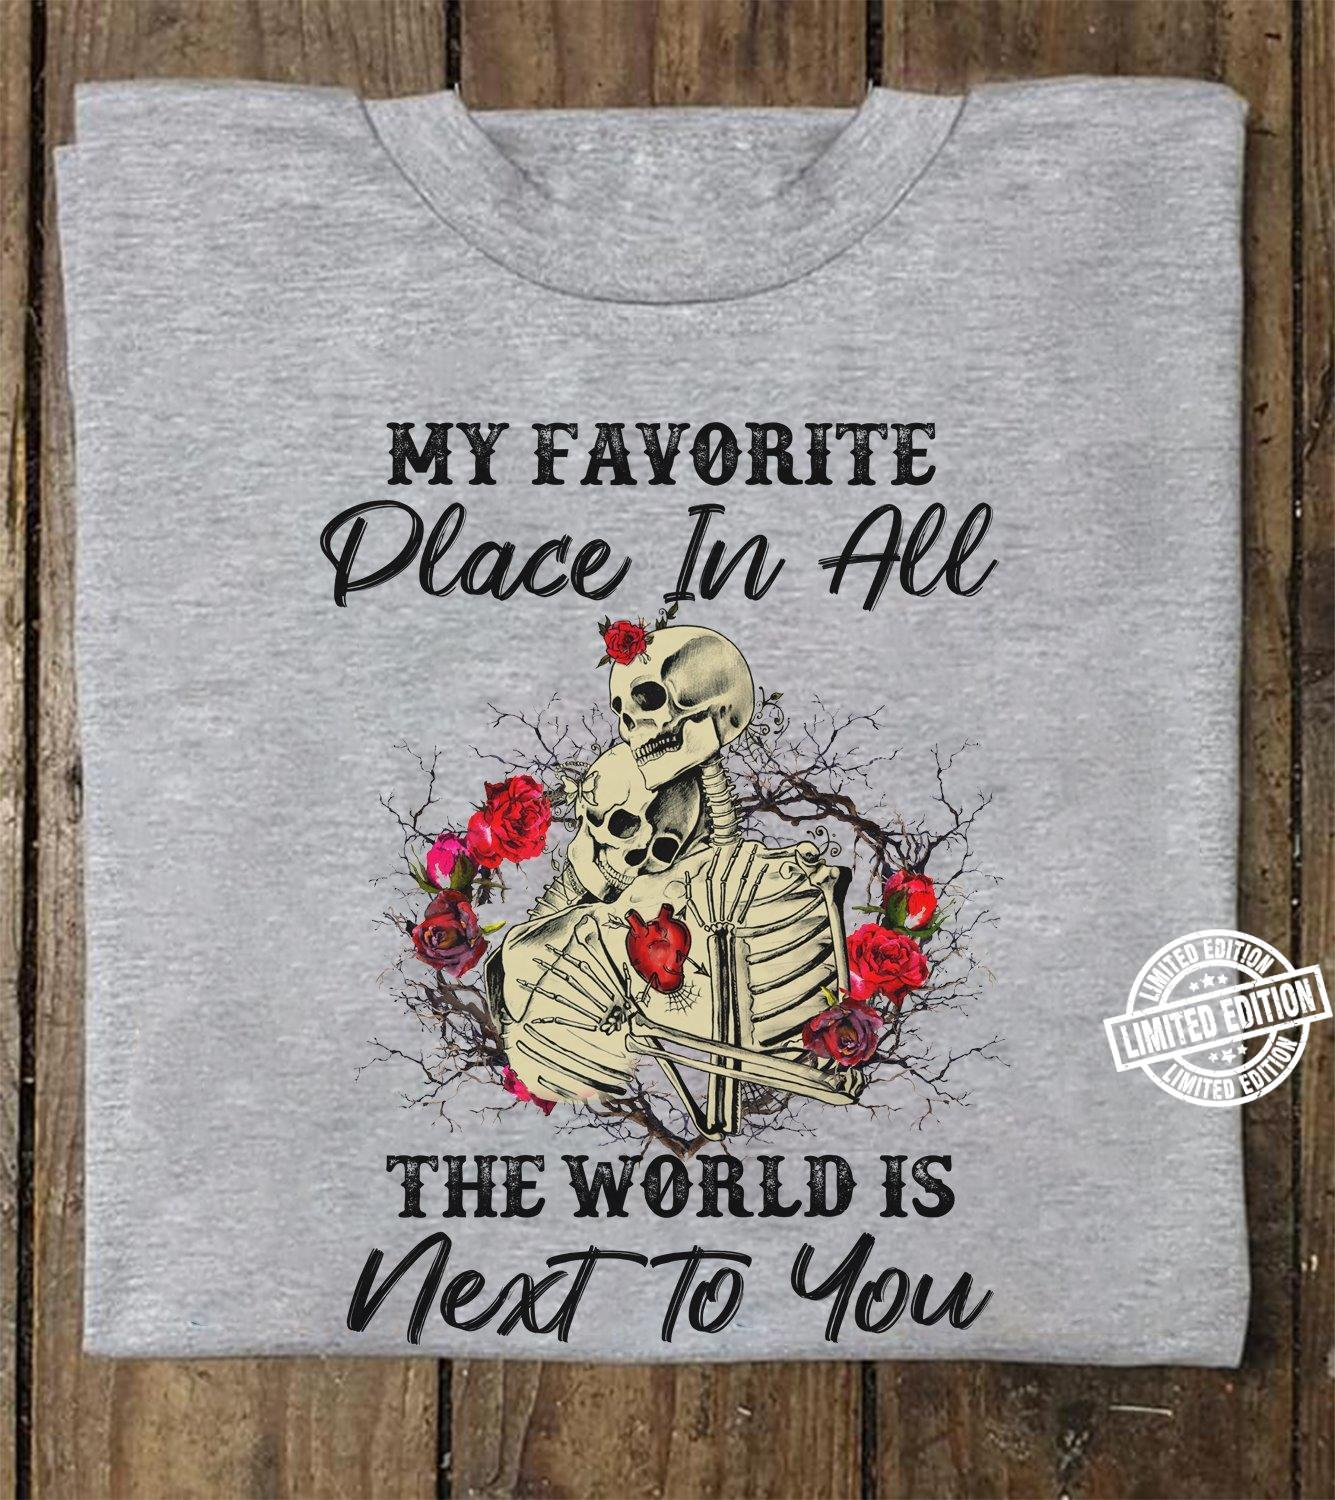 My favorite place in all the world is next to you shirt